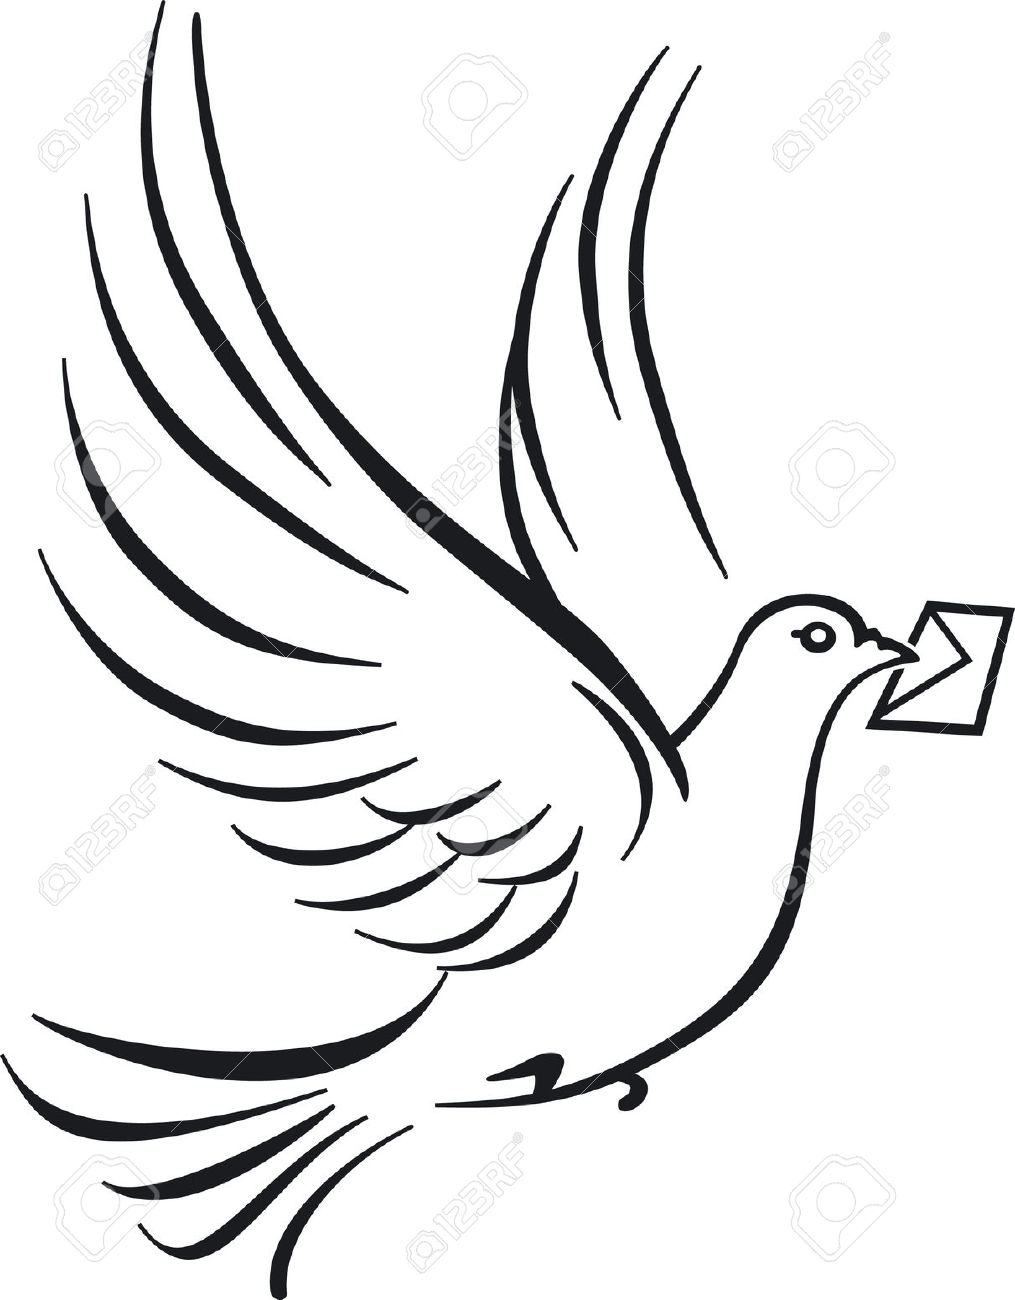 Carrier Pigeons Royalty Free Cliparts, Vectors, And Stock.